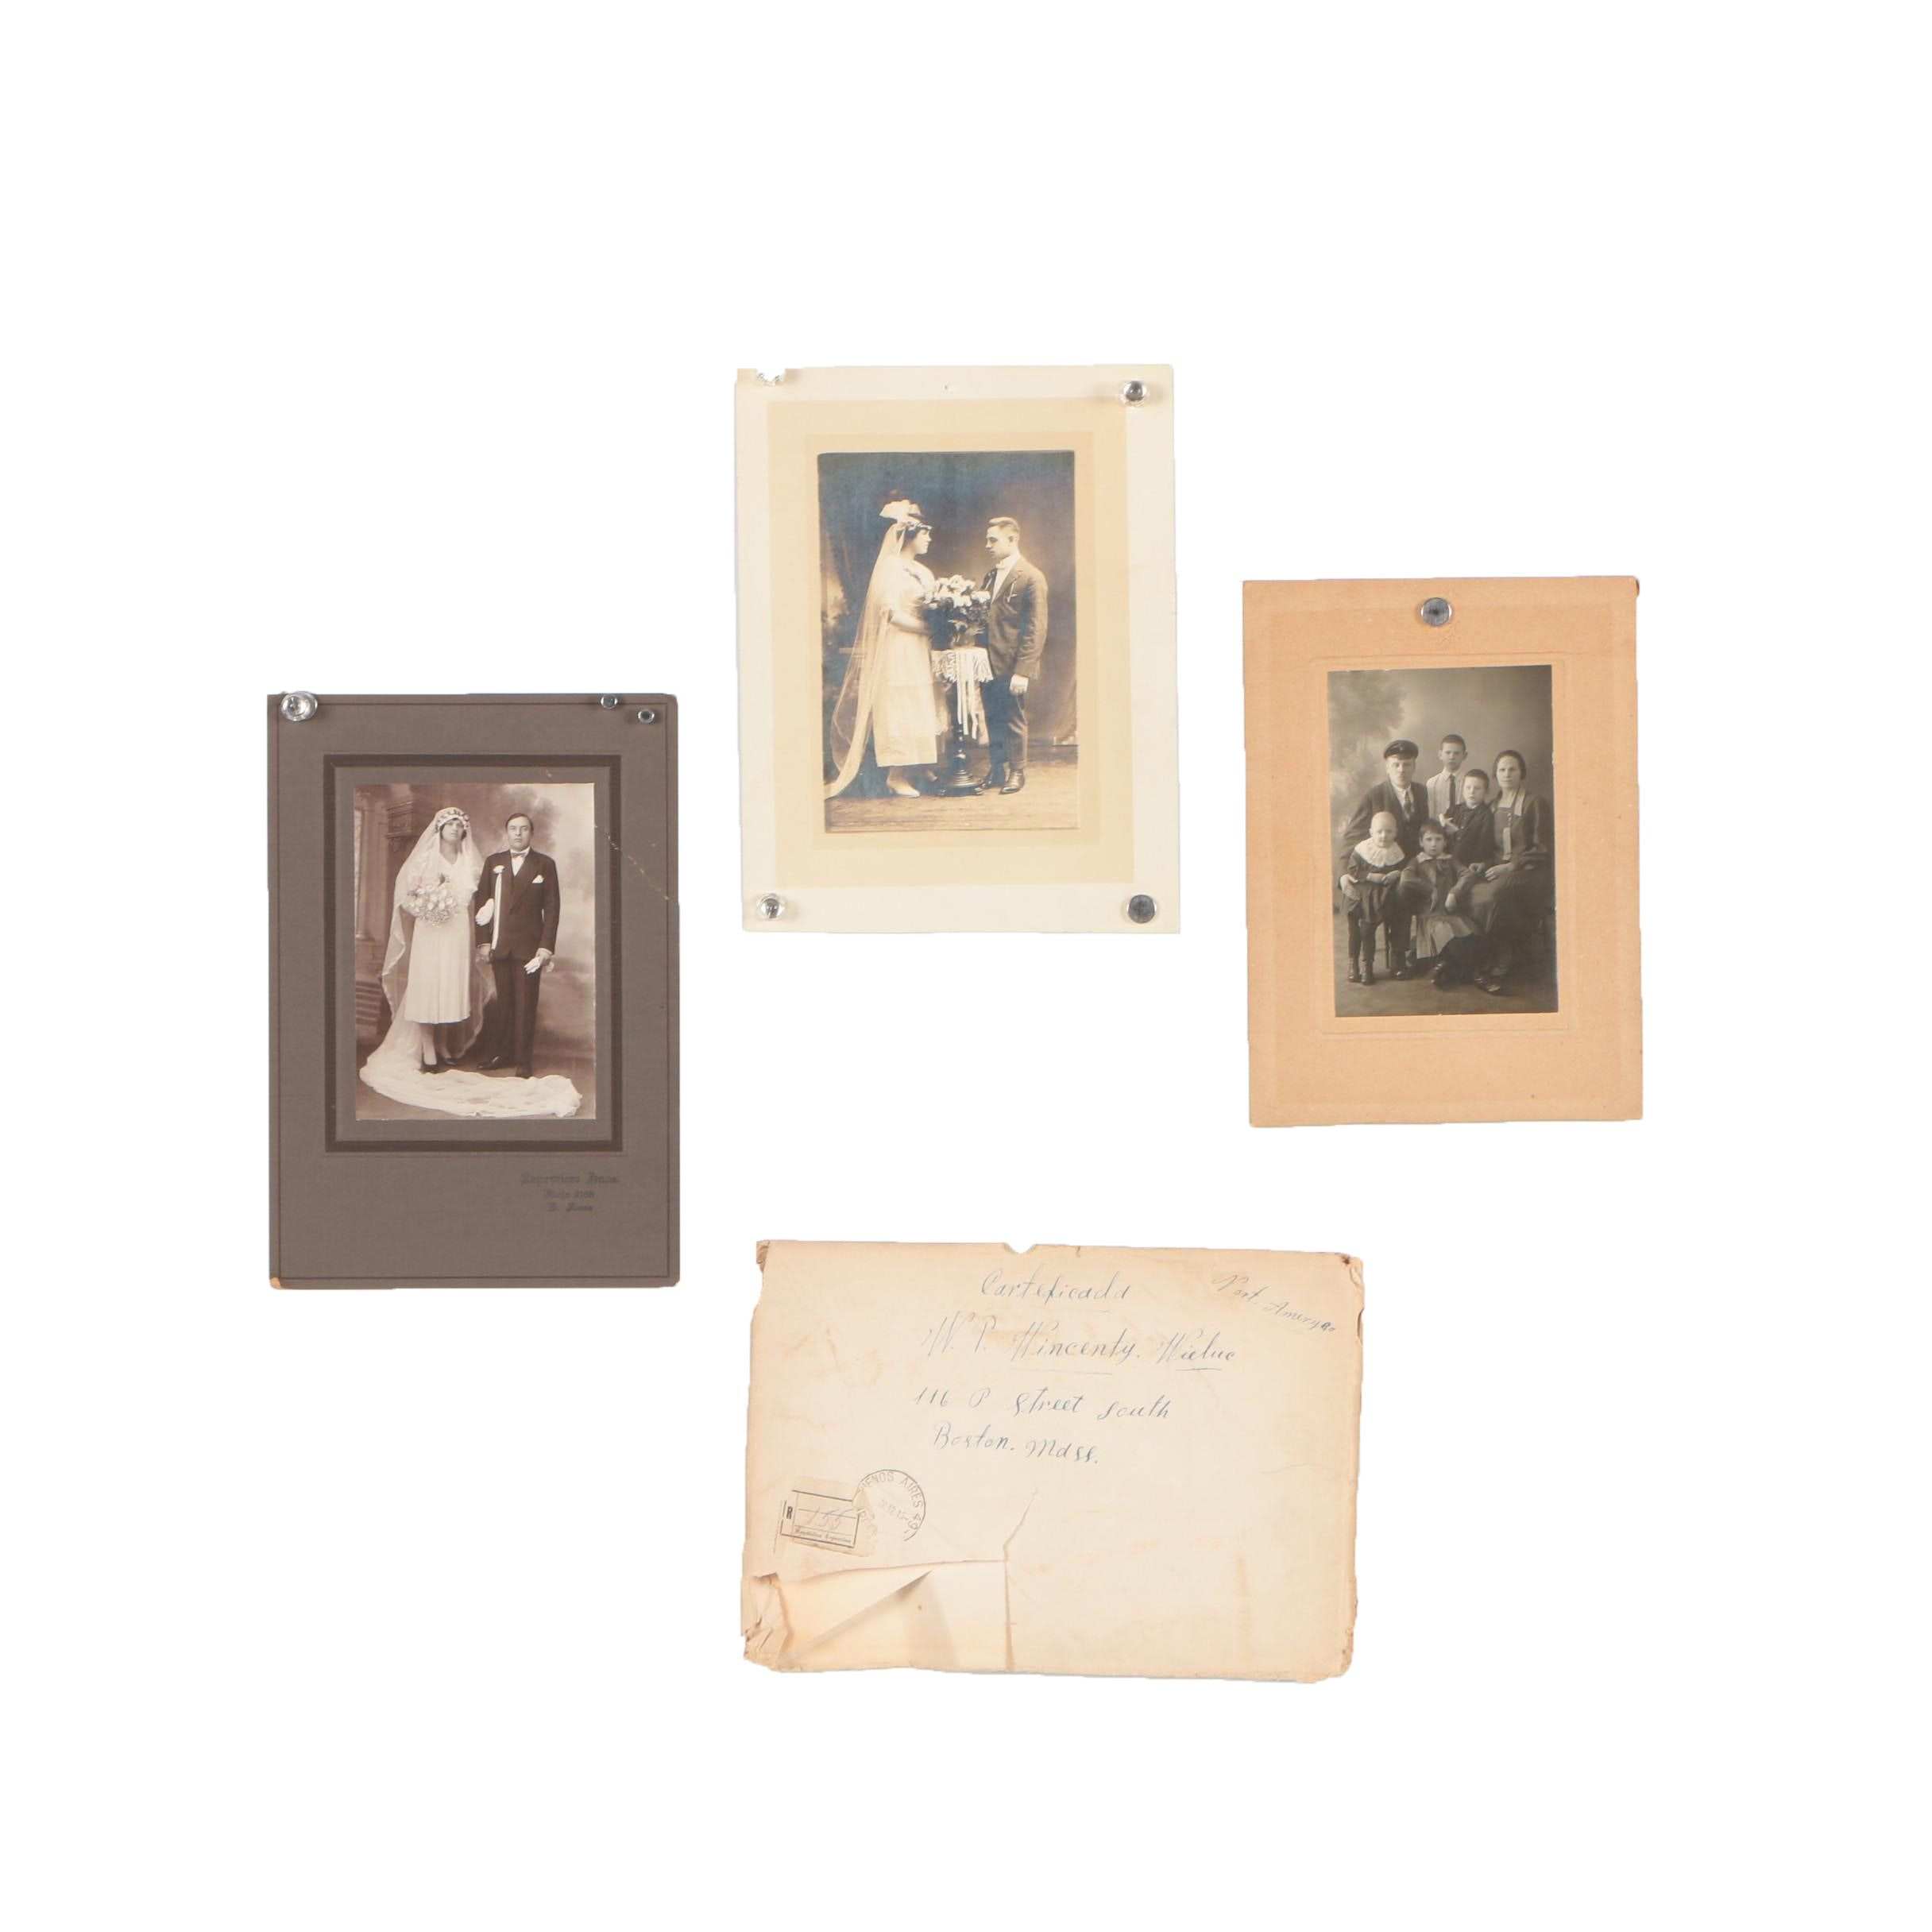 Early 20th Century Gelatin-Silver Photographs and Envelope